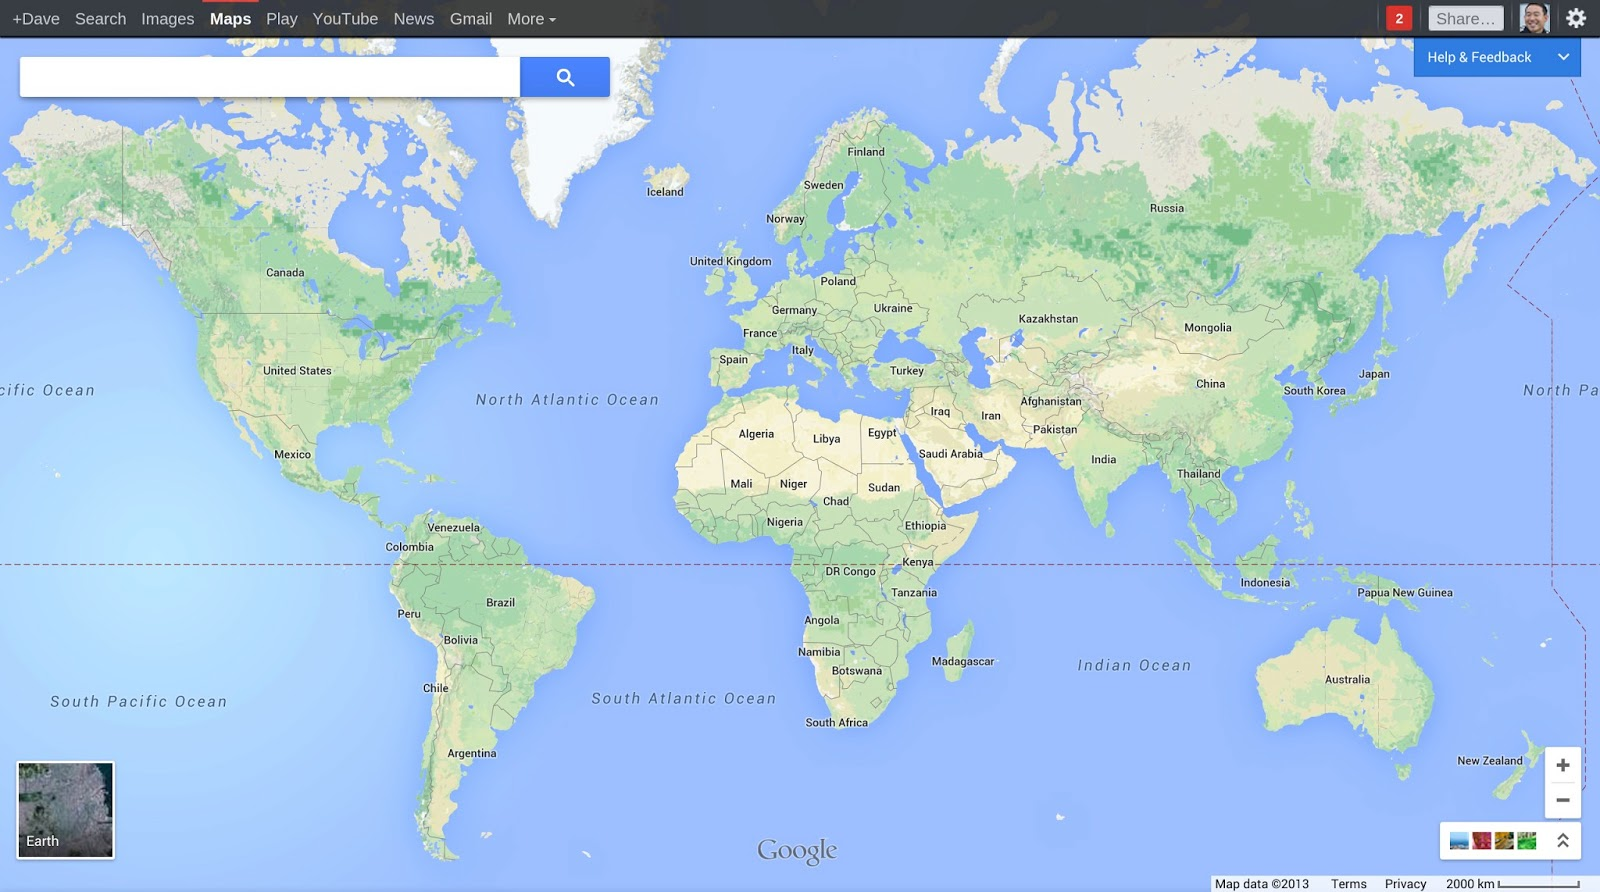 the new google maps uses vector based maps that download and display more quickly